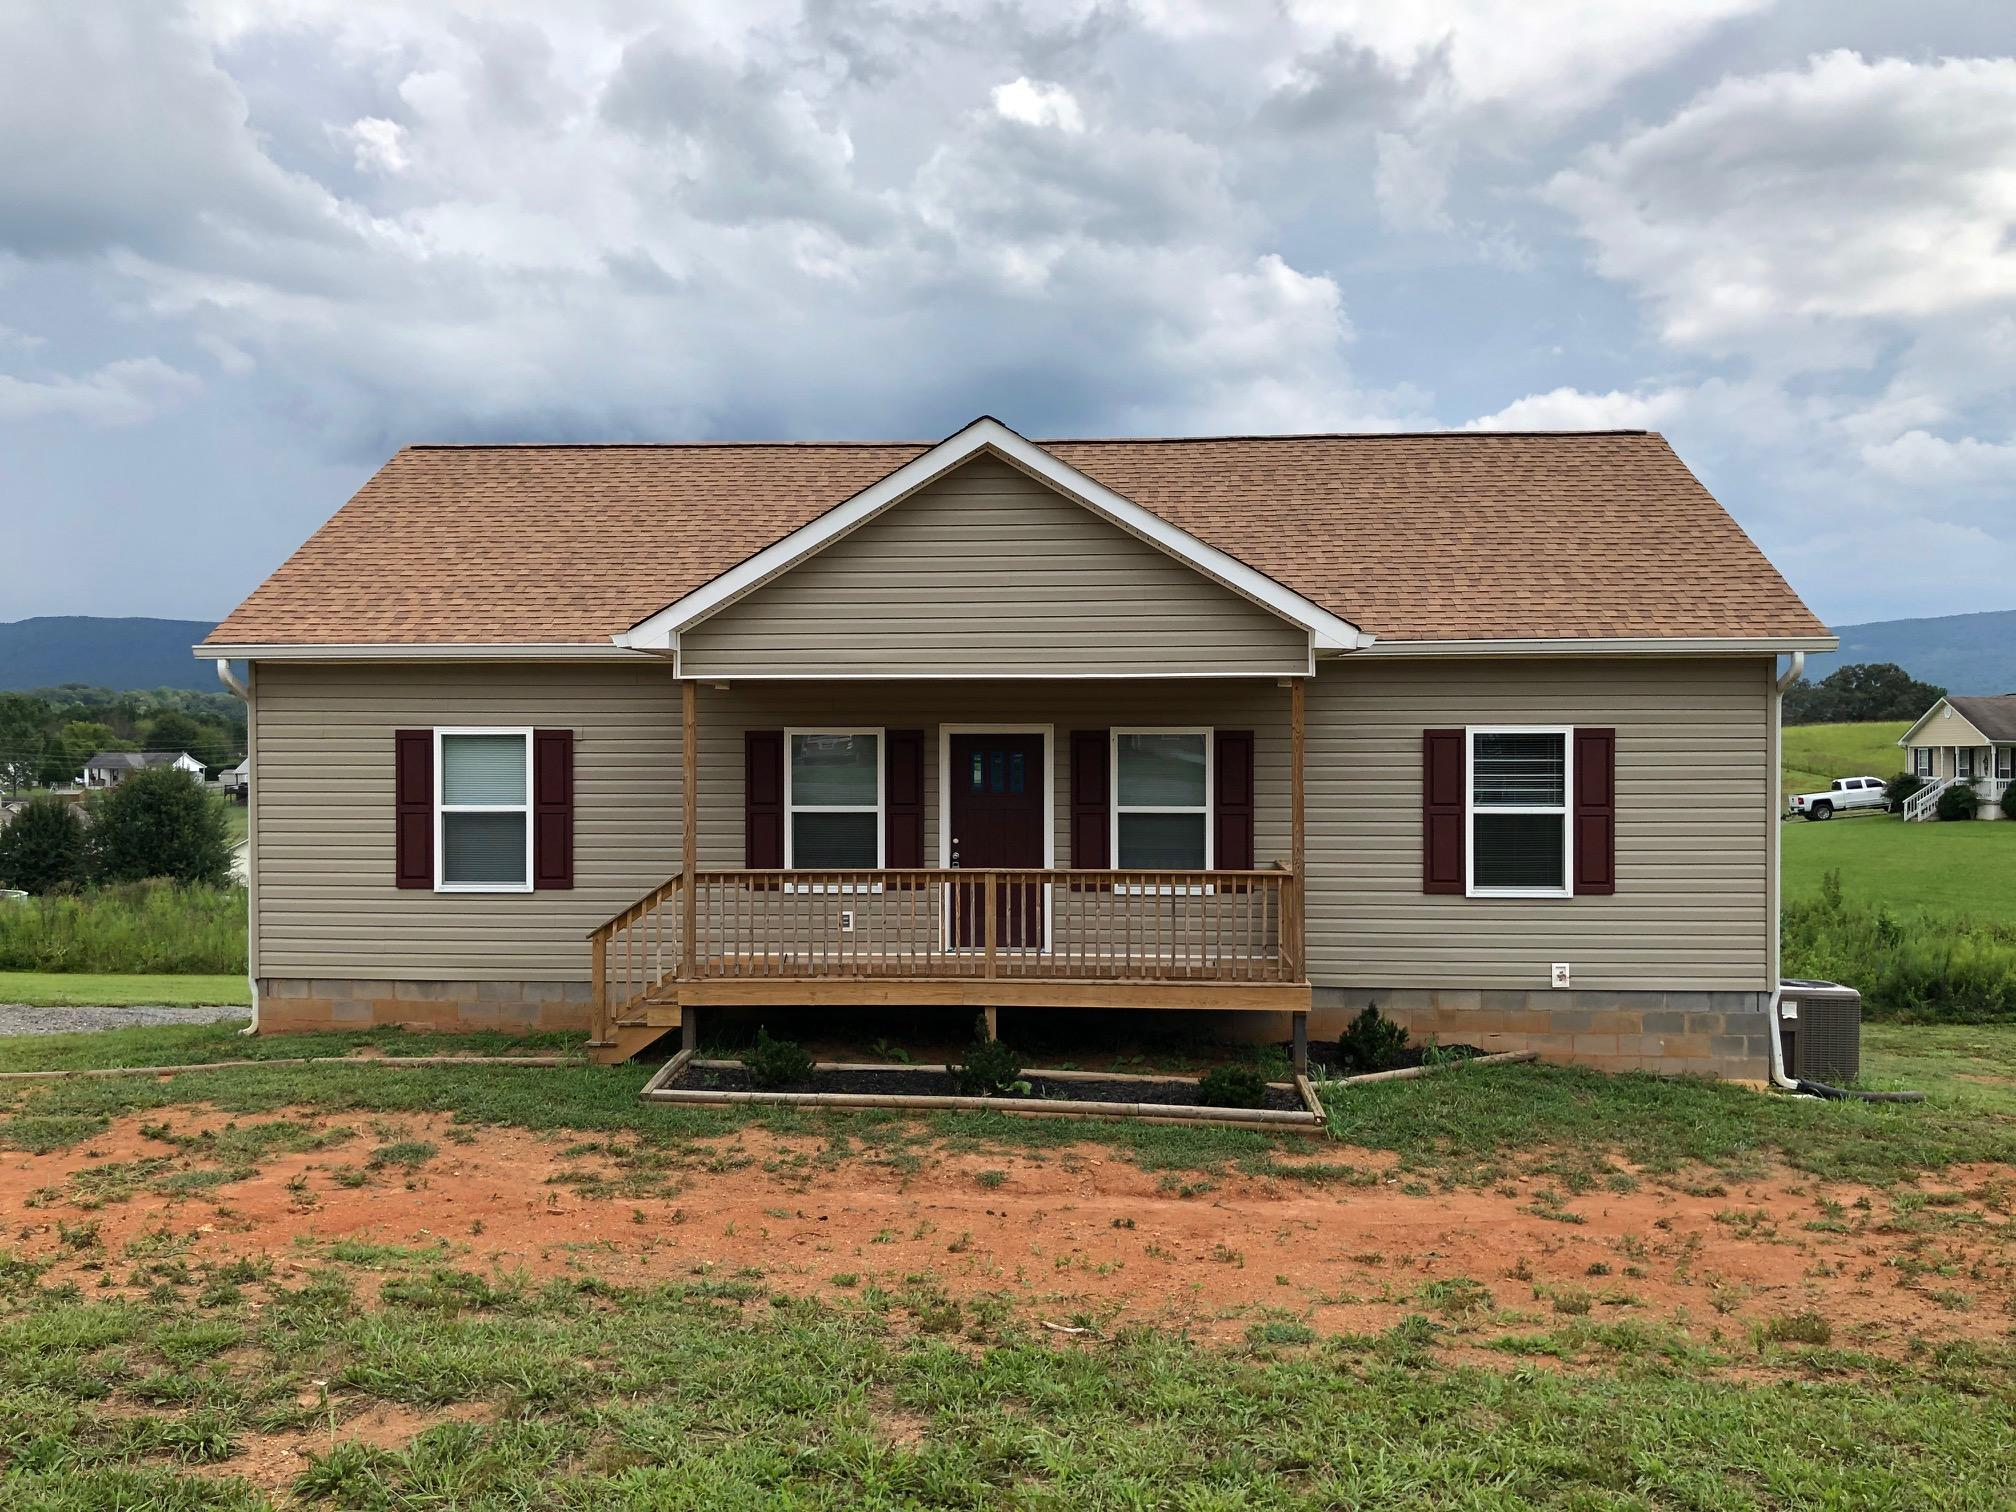 165 Rena Dr, Whitwell, TN 37397